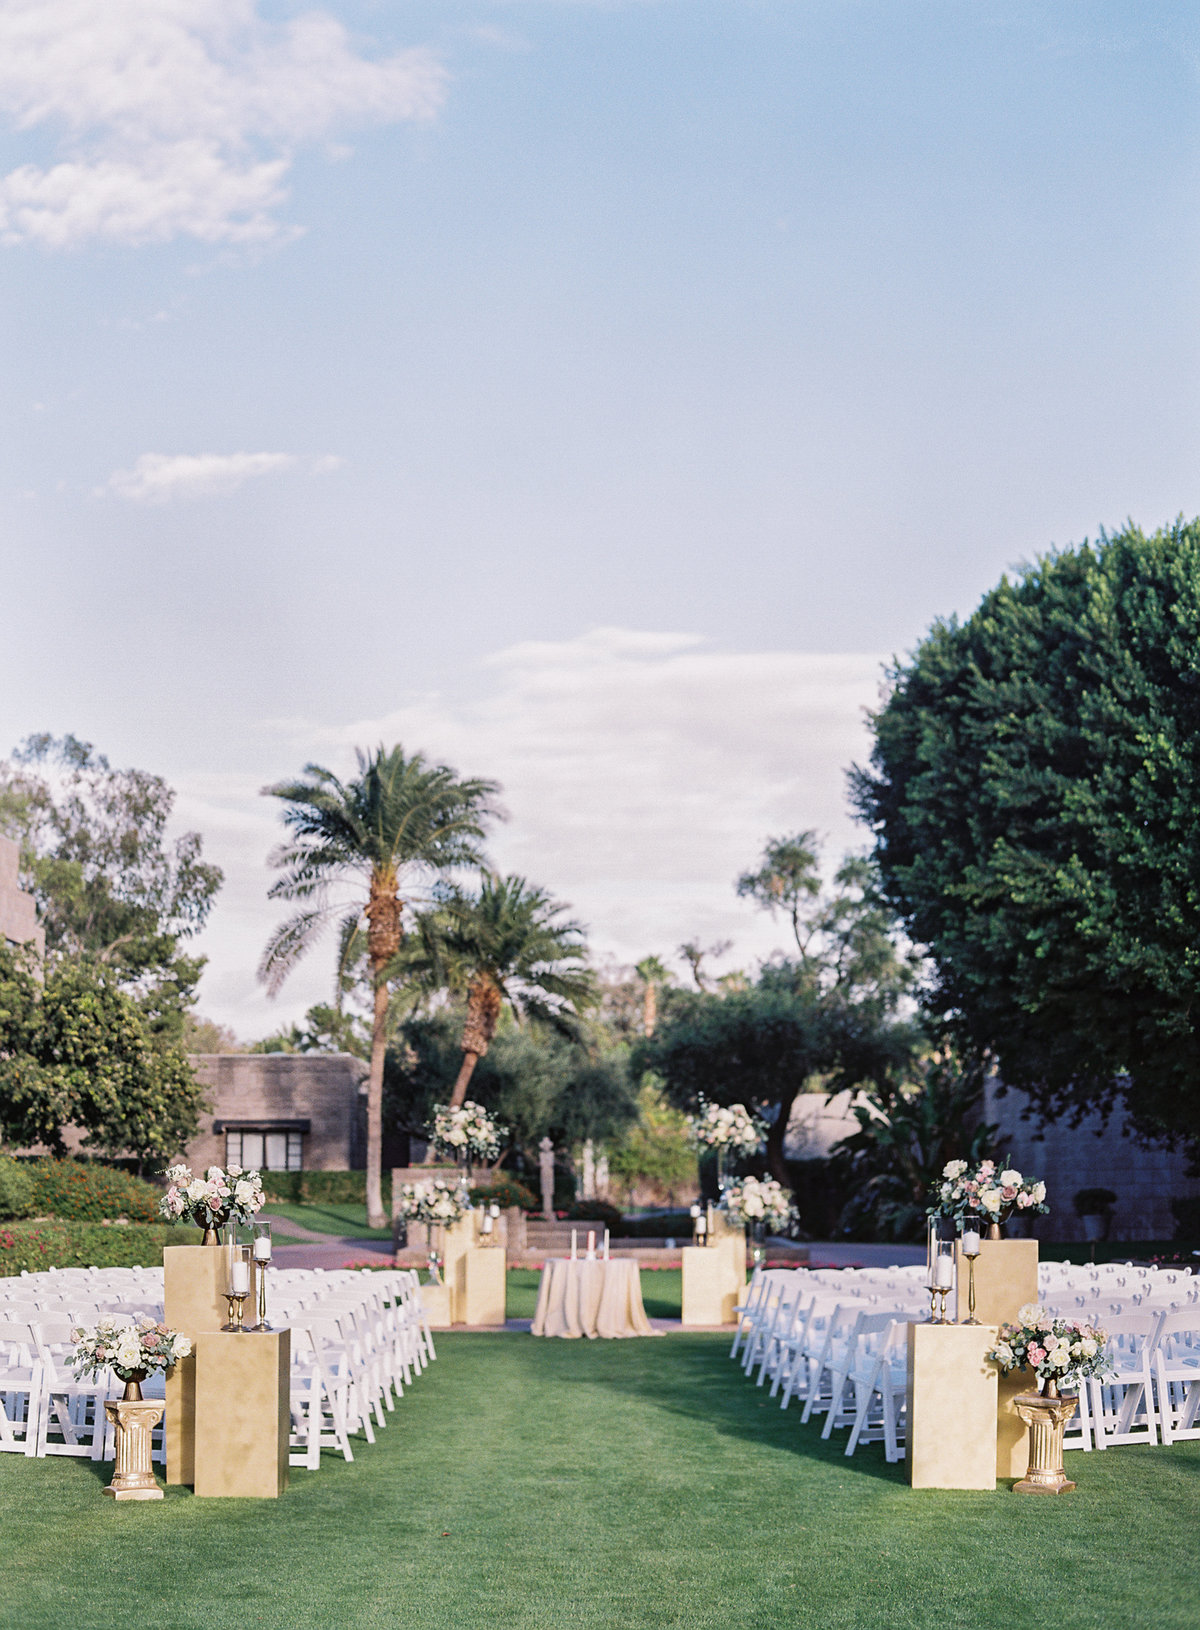 Arizona Biltmore Wedding - Mary Claire Photography-5